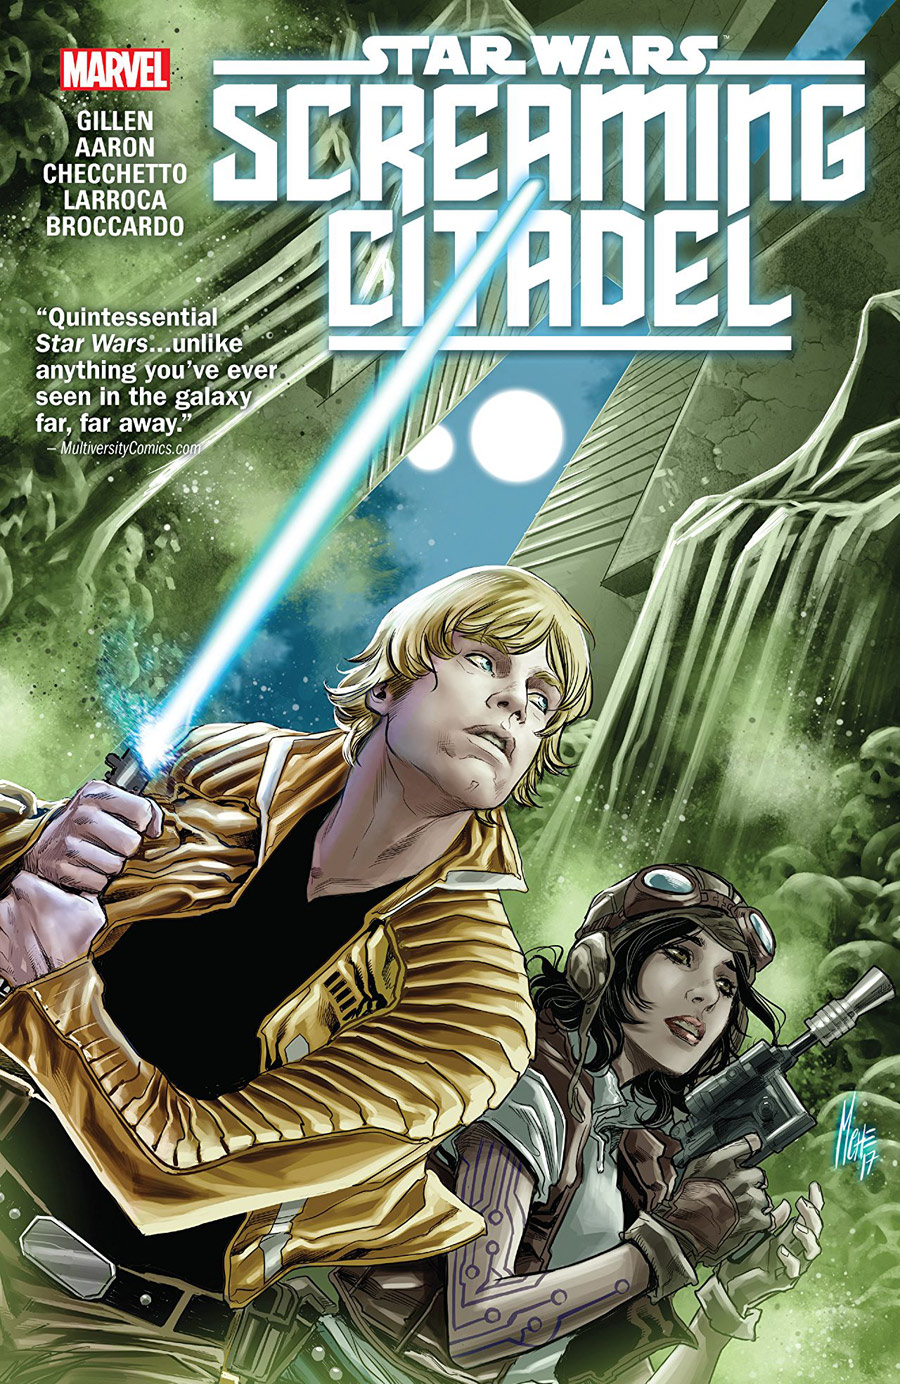 Doctor Aphra A Reader S Guide To The Fan Favorite Comic Book